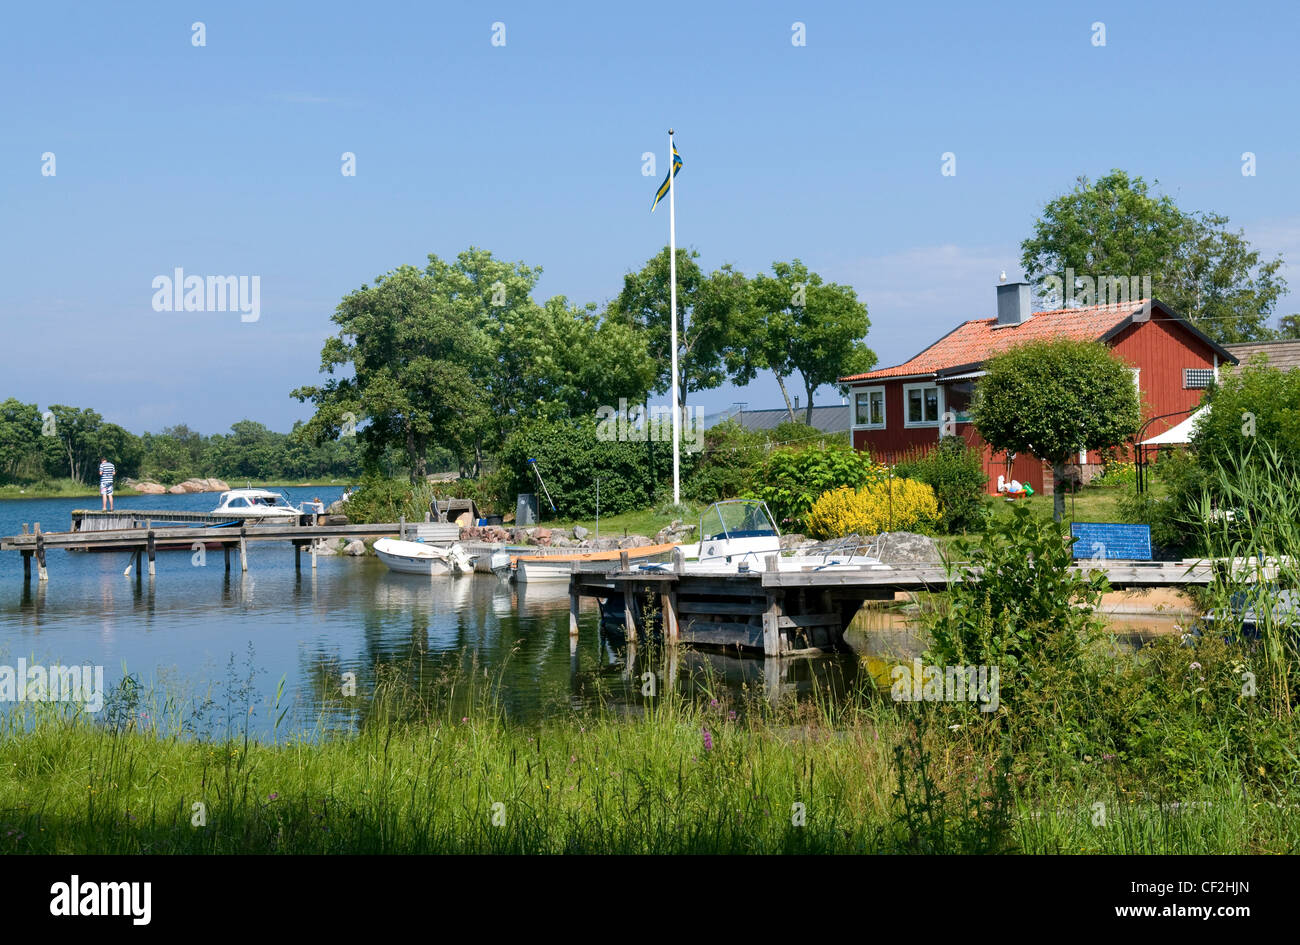 Picturesque view of house and jetty in small bay on the Idyllic island of Rödlöga in the Stockholm archipelago, - Stock Image